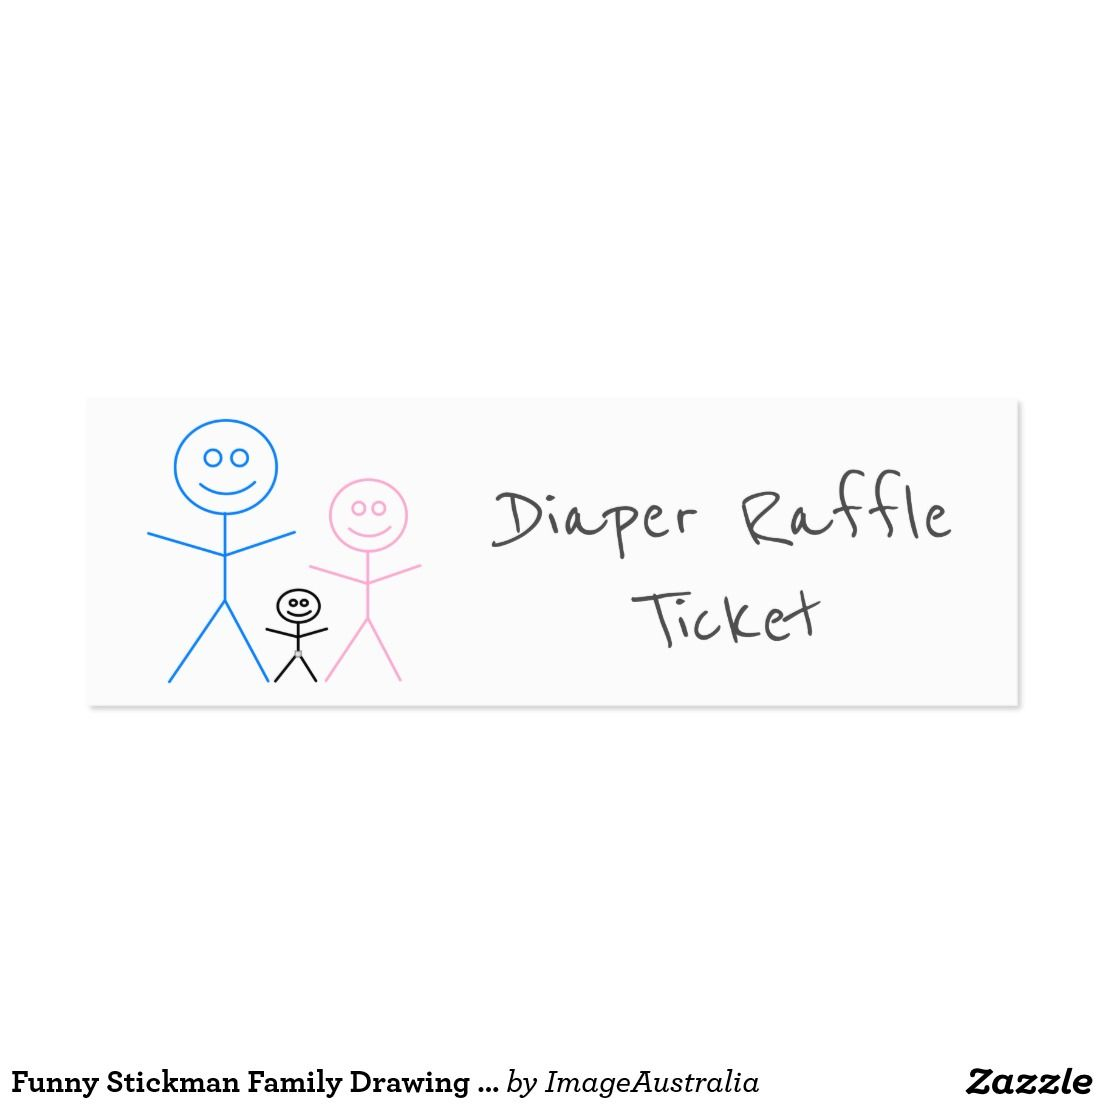 funny stickman family drawing diaper raffle ticket diaper raffle funny stickman family drawing diaper raffle ticket mini business card